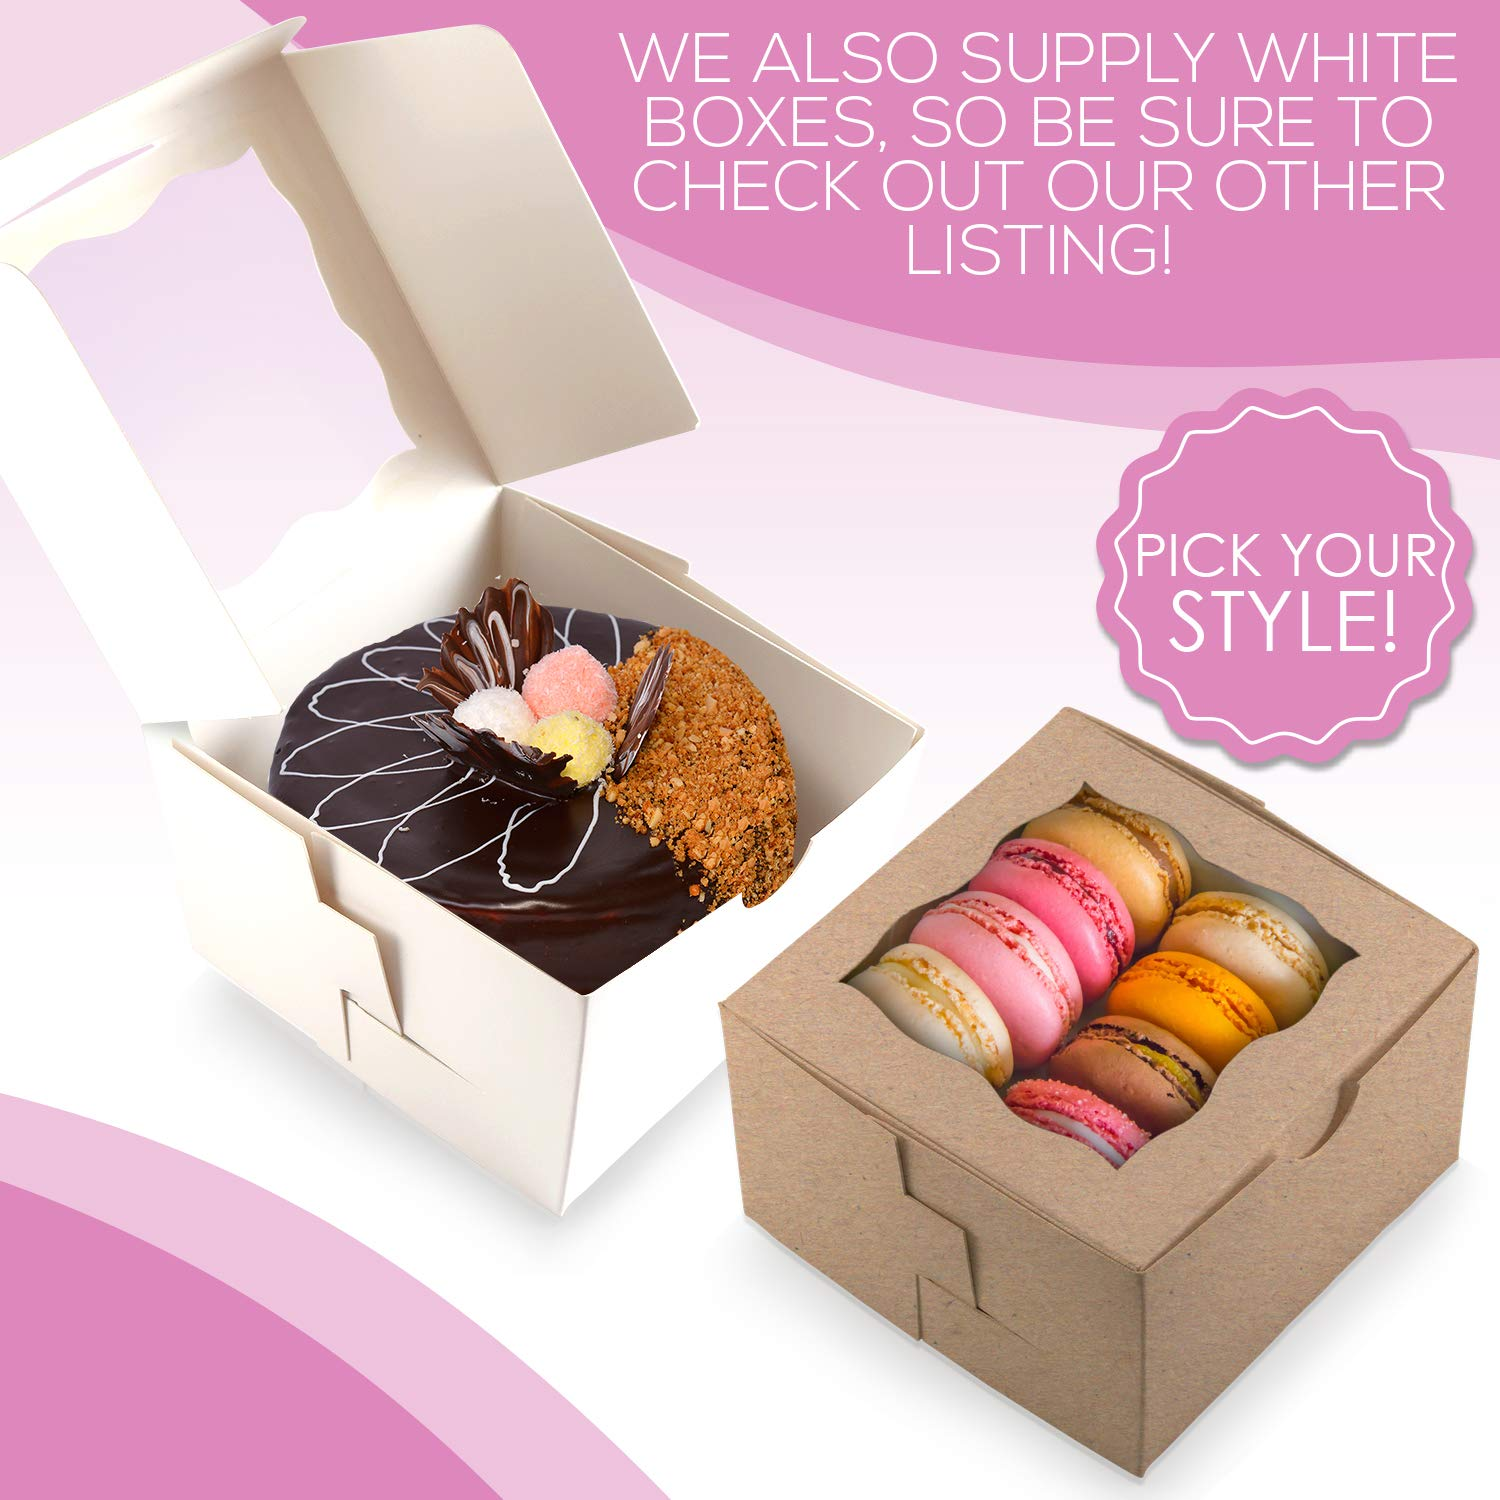 [50Pack] Bakery and Wedding Favor Boxes with Window 4x4x2.5'' - Gift Boxes for Cookies, Cake, Pastries, Donuts, Cupcakes, Candy & Baked Good Treats | Small Dessert Packaging Party Containers by FreshLi (Image #6)